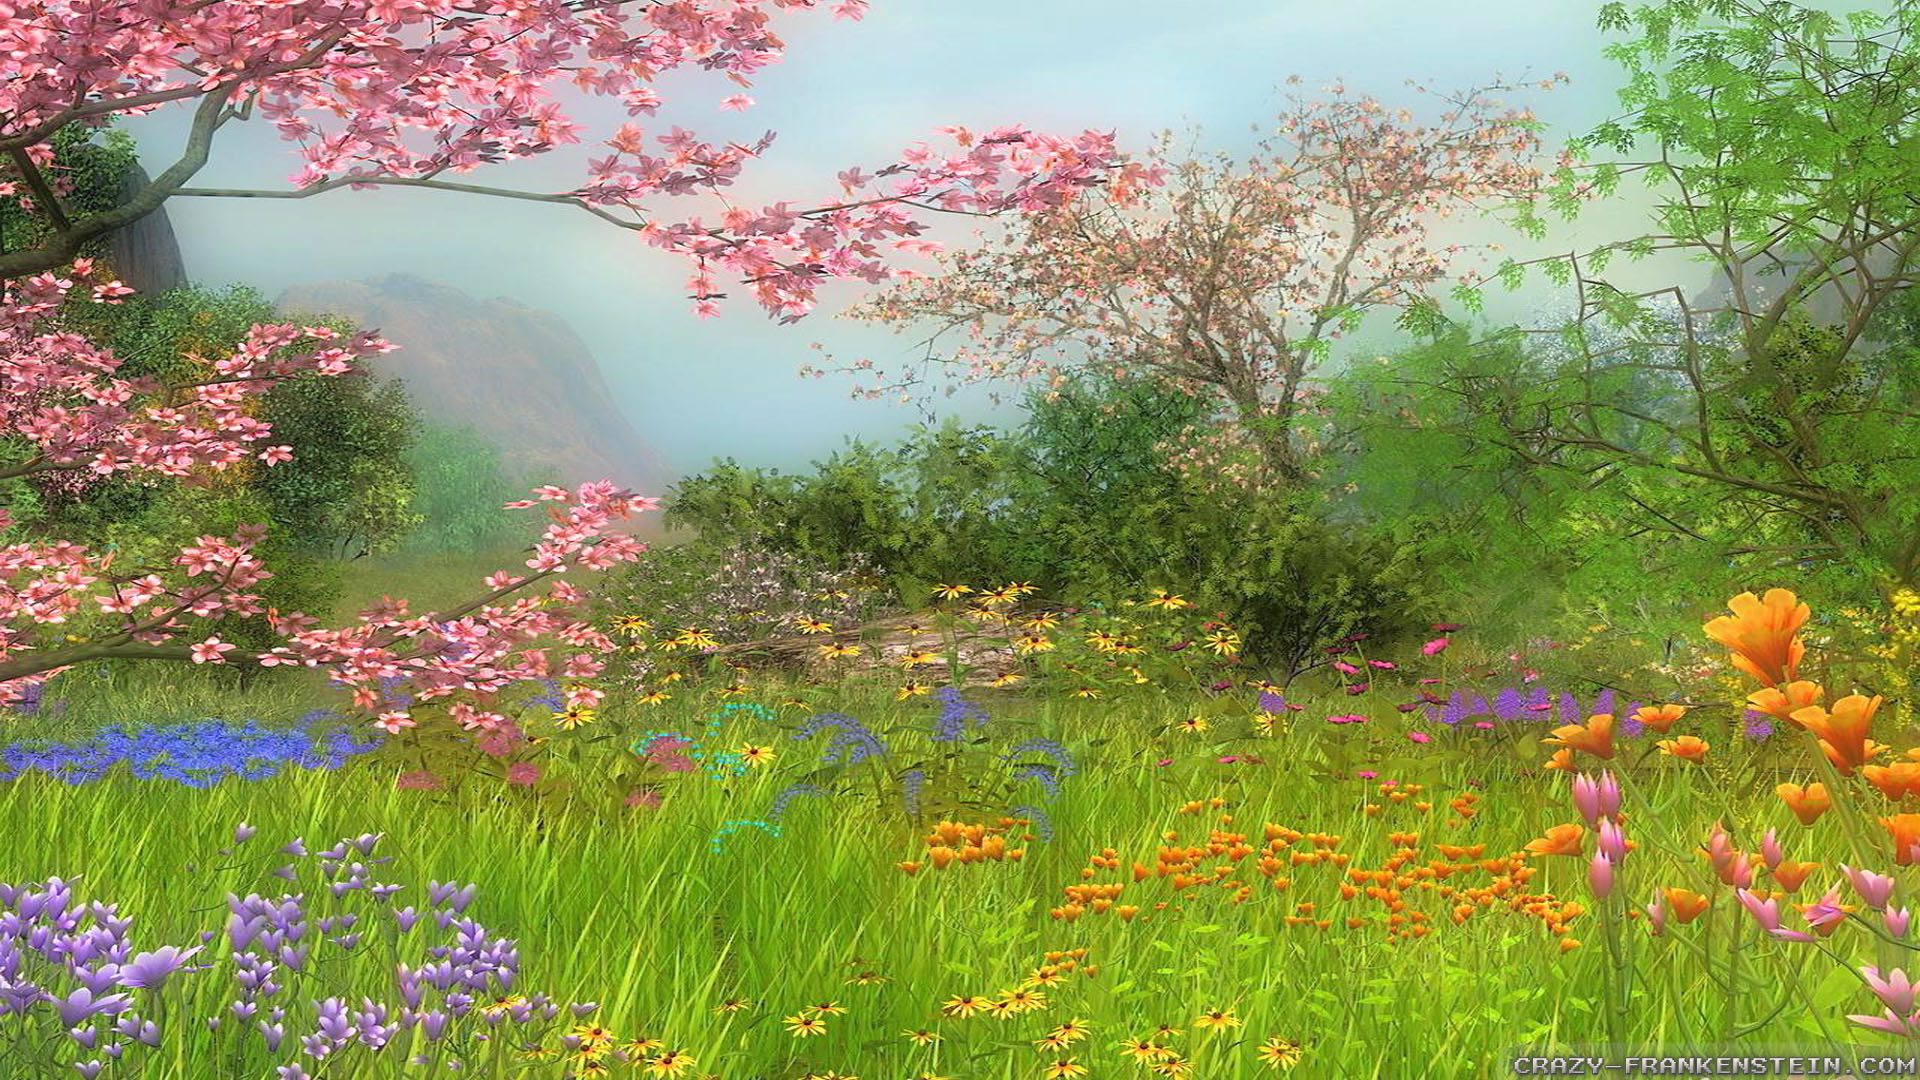 Spring Nature Wallpapers - Wallpaper Cave |Spring Nature Scenes